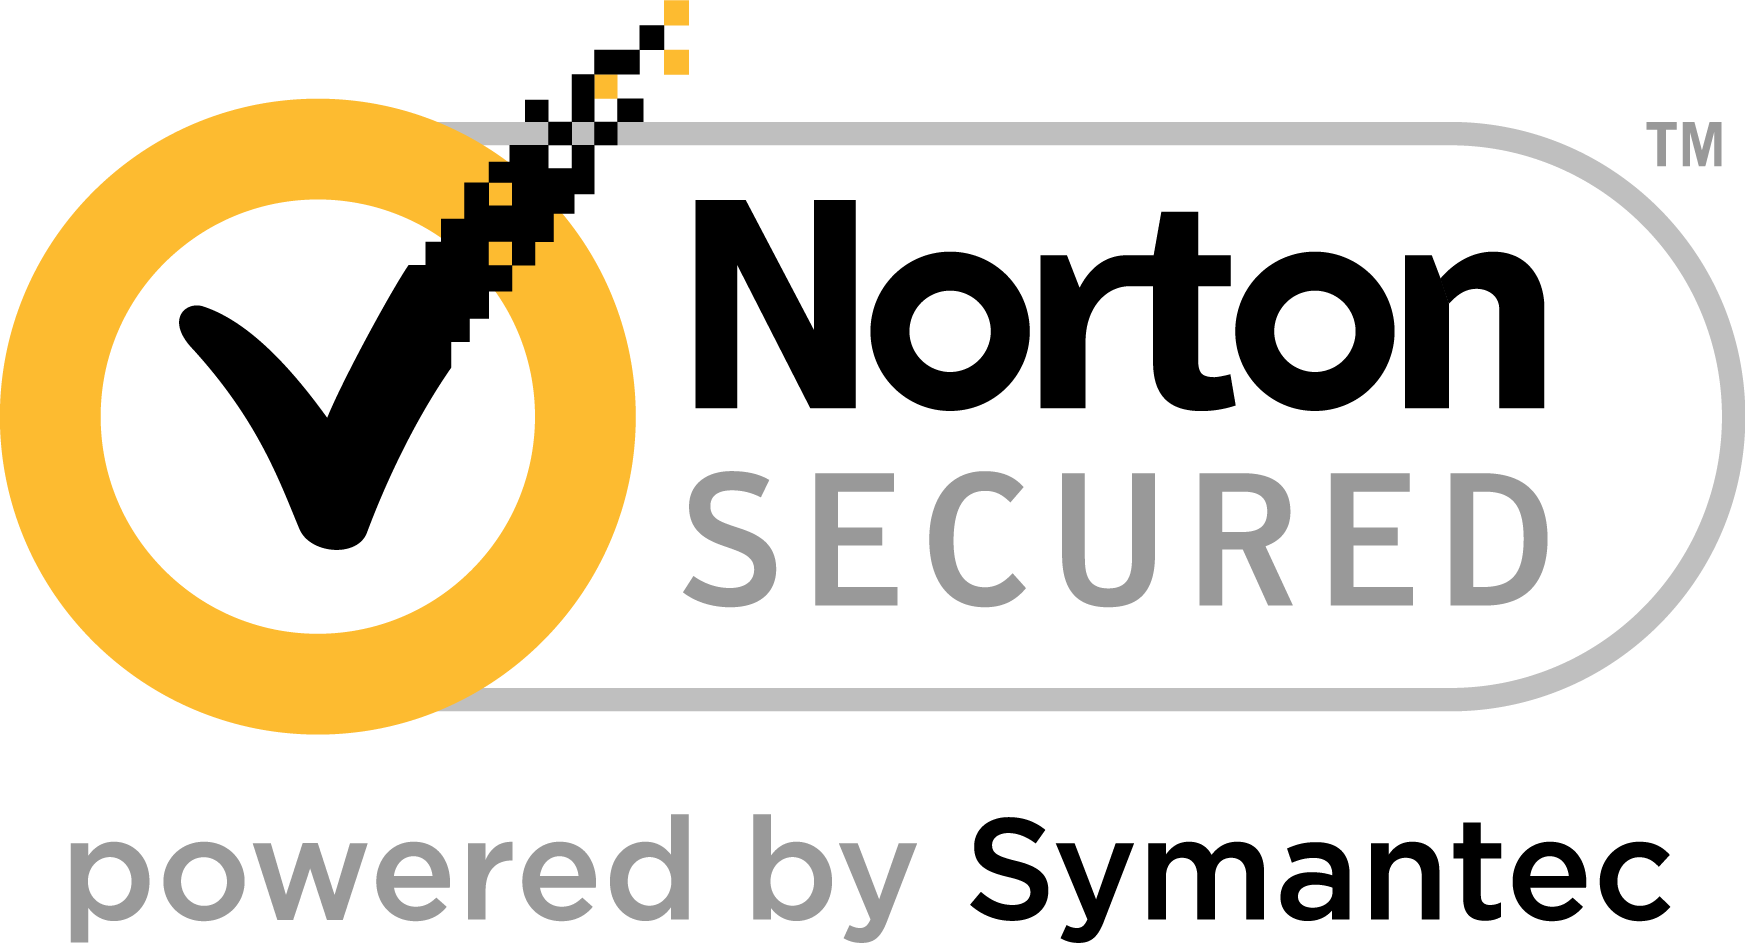 110-1105880_secure-checkout-norton-secured-logo-png